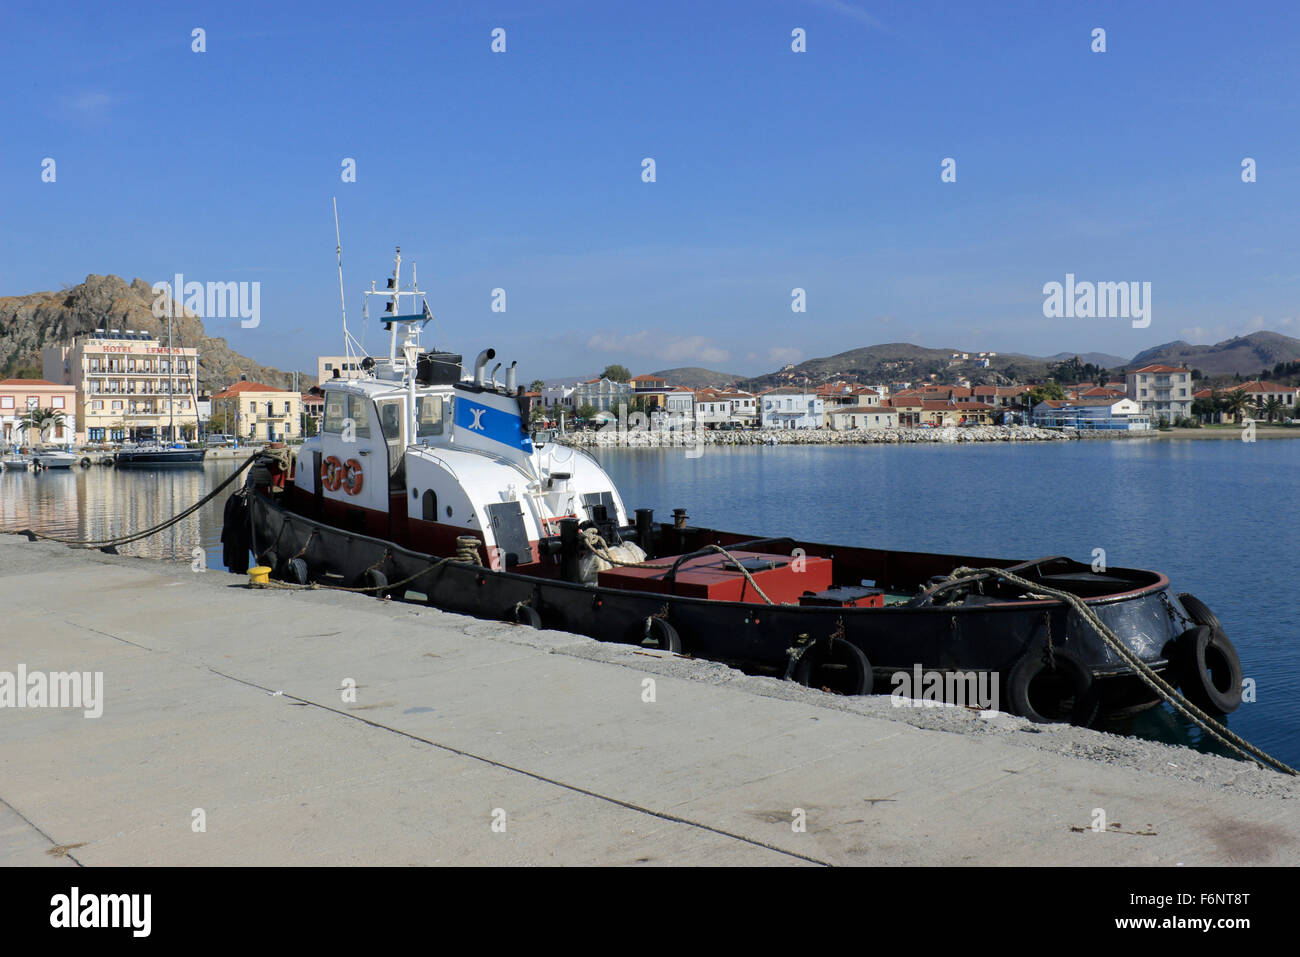 Anchored tug boat and Myrina's city port and quay (afar) view - Stock Image